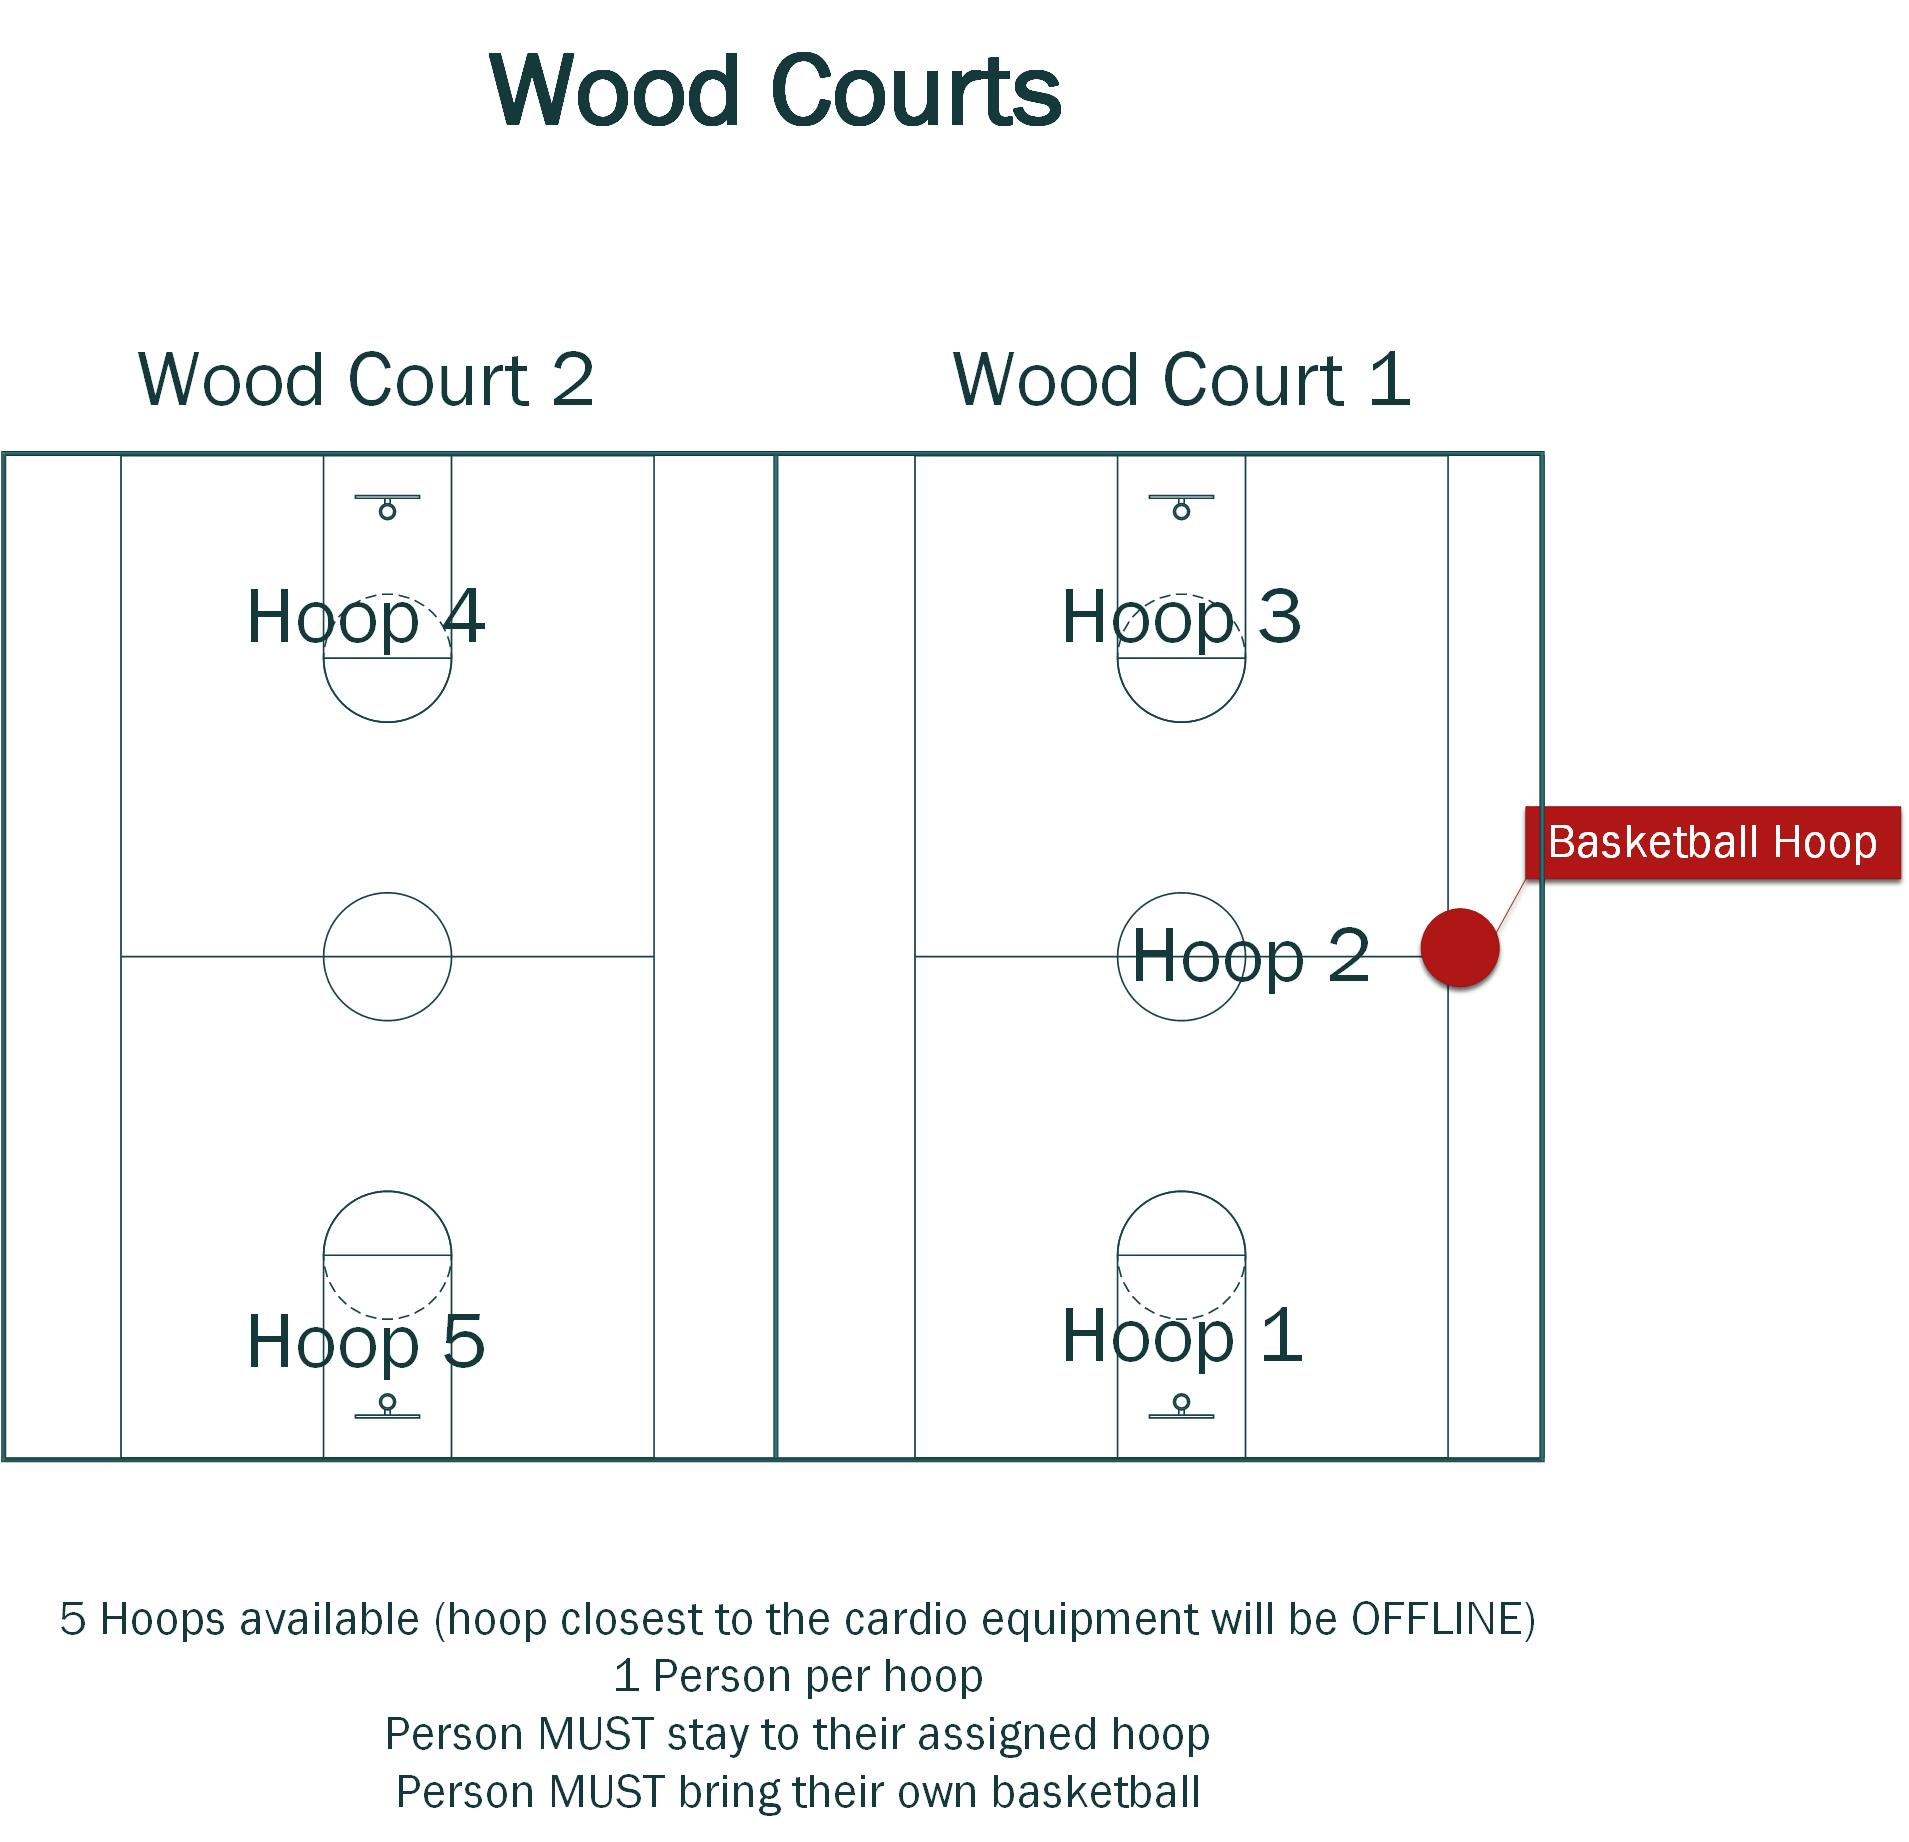 A diagram of the wood courts in the Sports & Recreation Center.